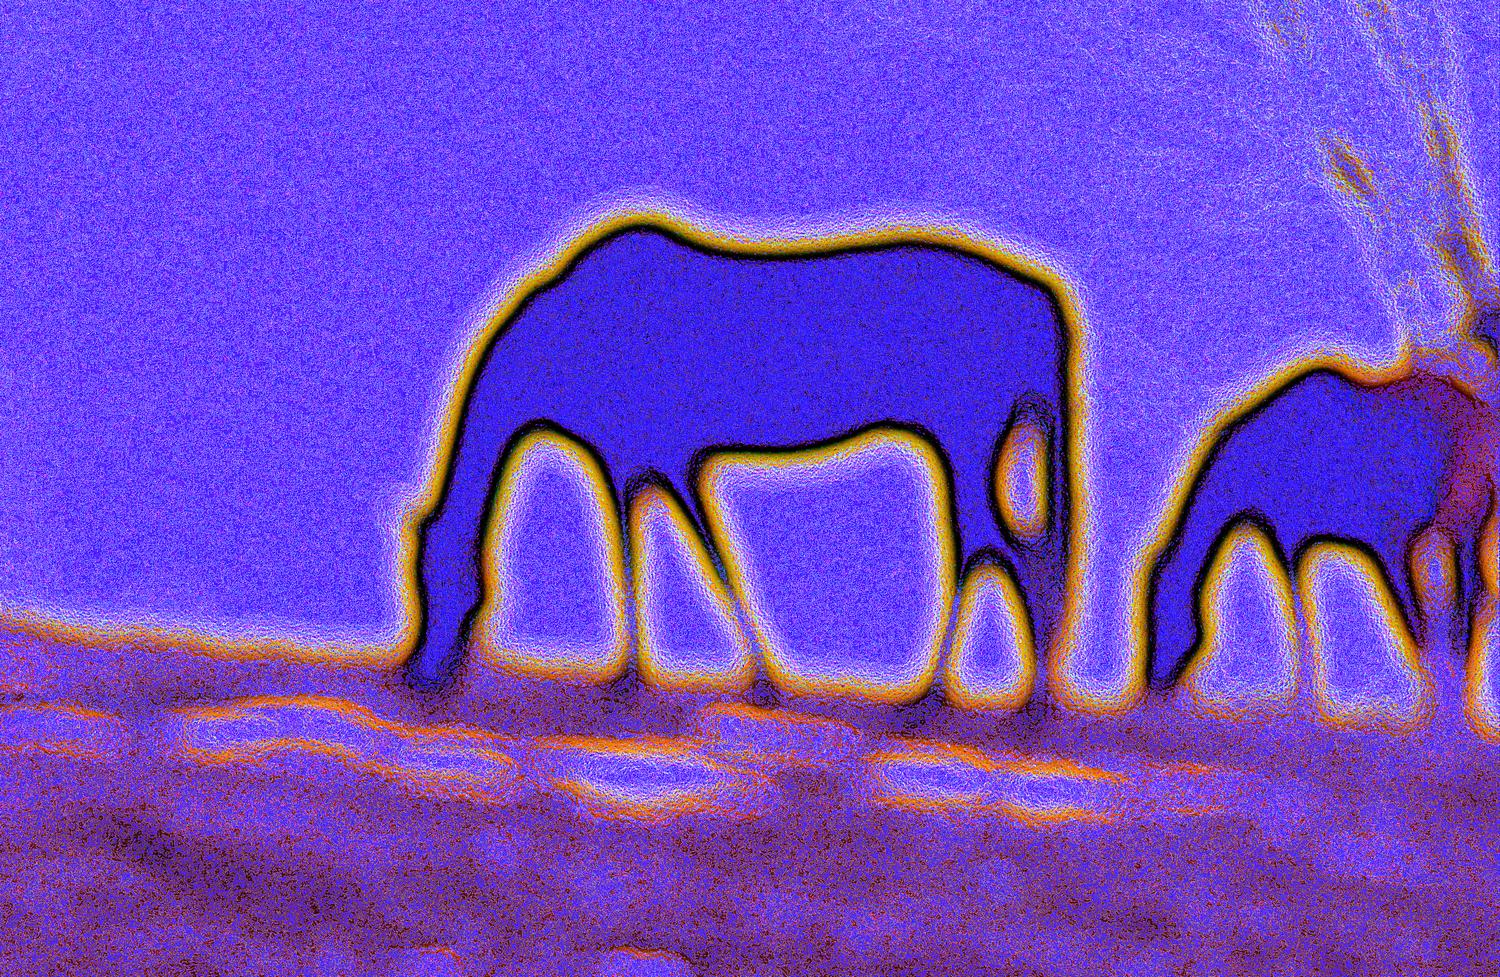 abstract picture of purple horses - Horses on Logmill Road - #1 - Techno-Impressionist Museum - Techno-Impressionism - art - beautiful - photo photography picture - by Tony Karp